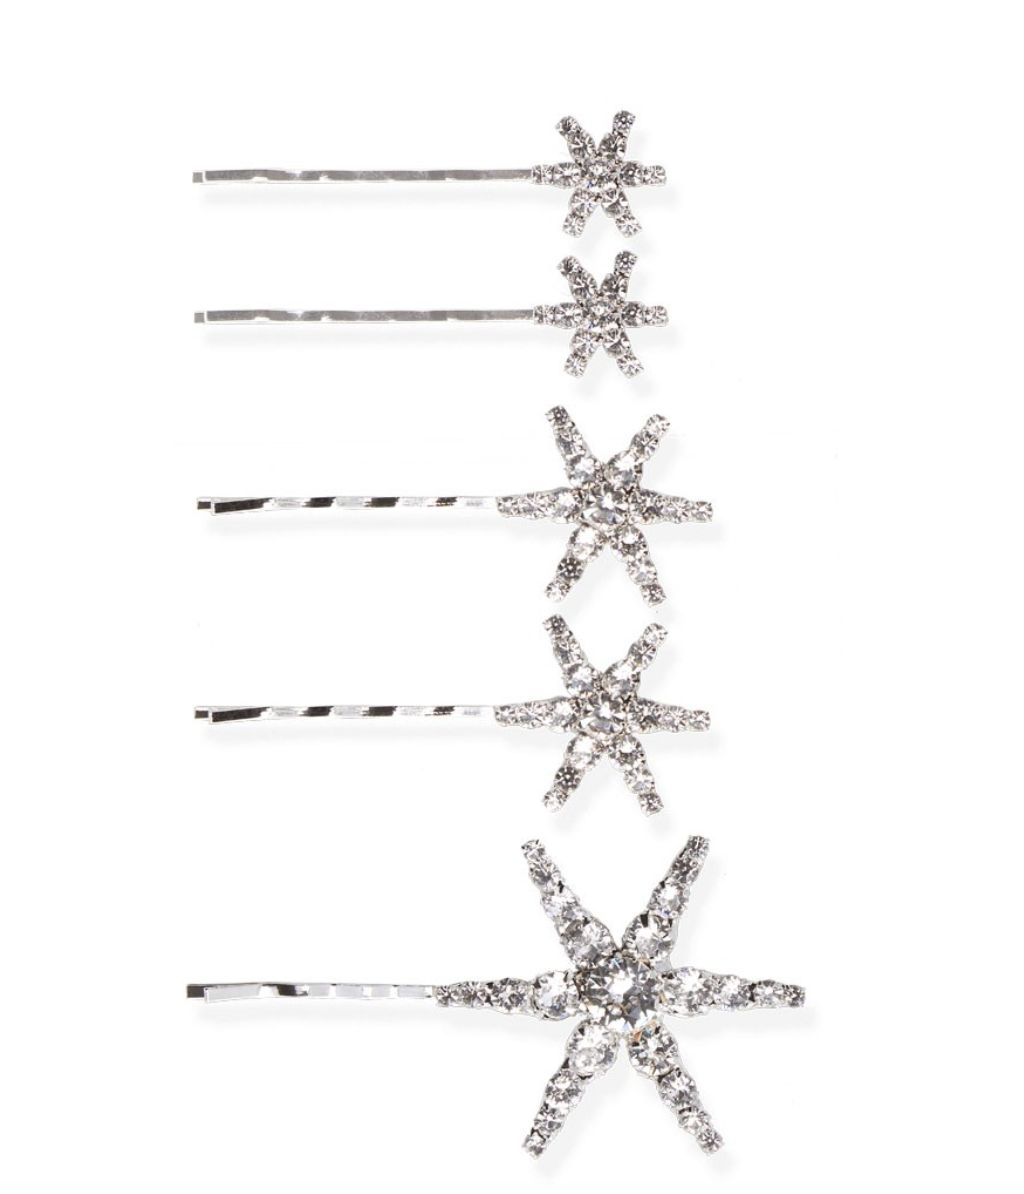 Vespera Bobby Pin Set of 5